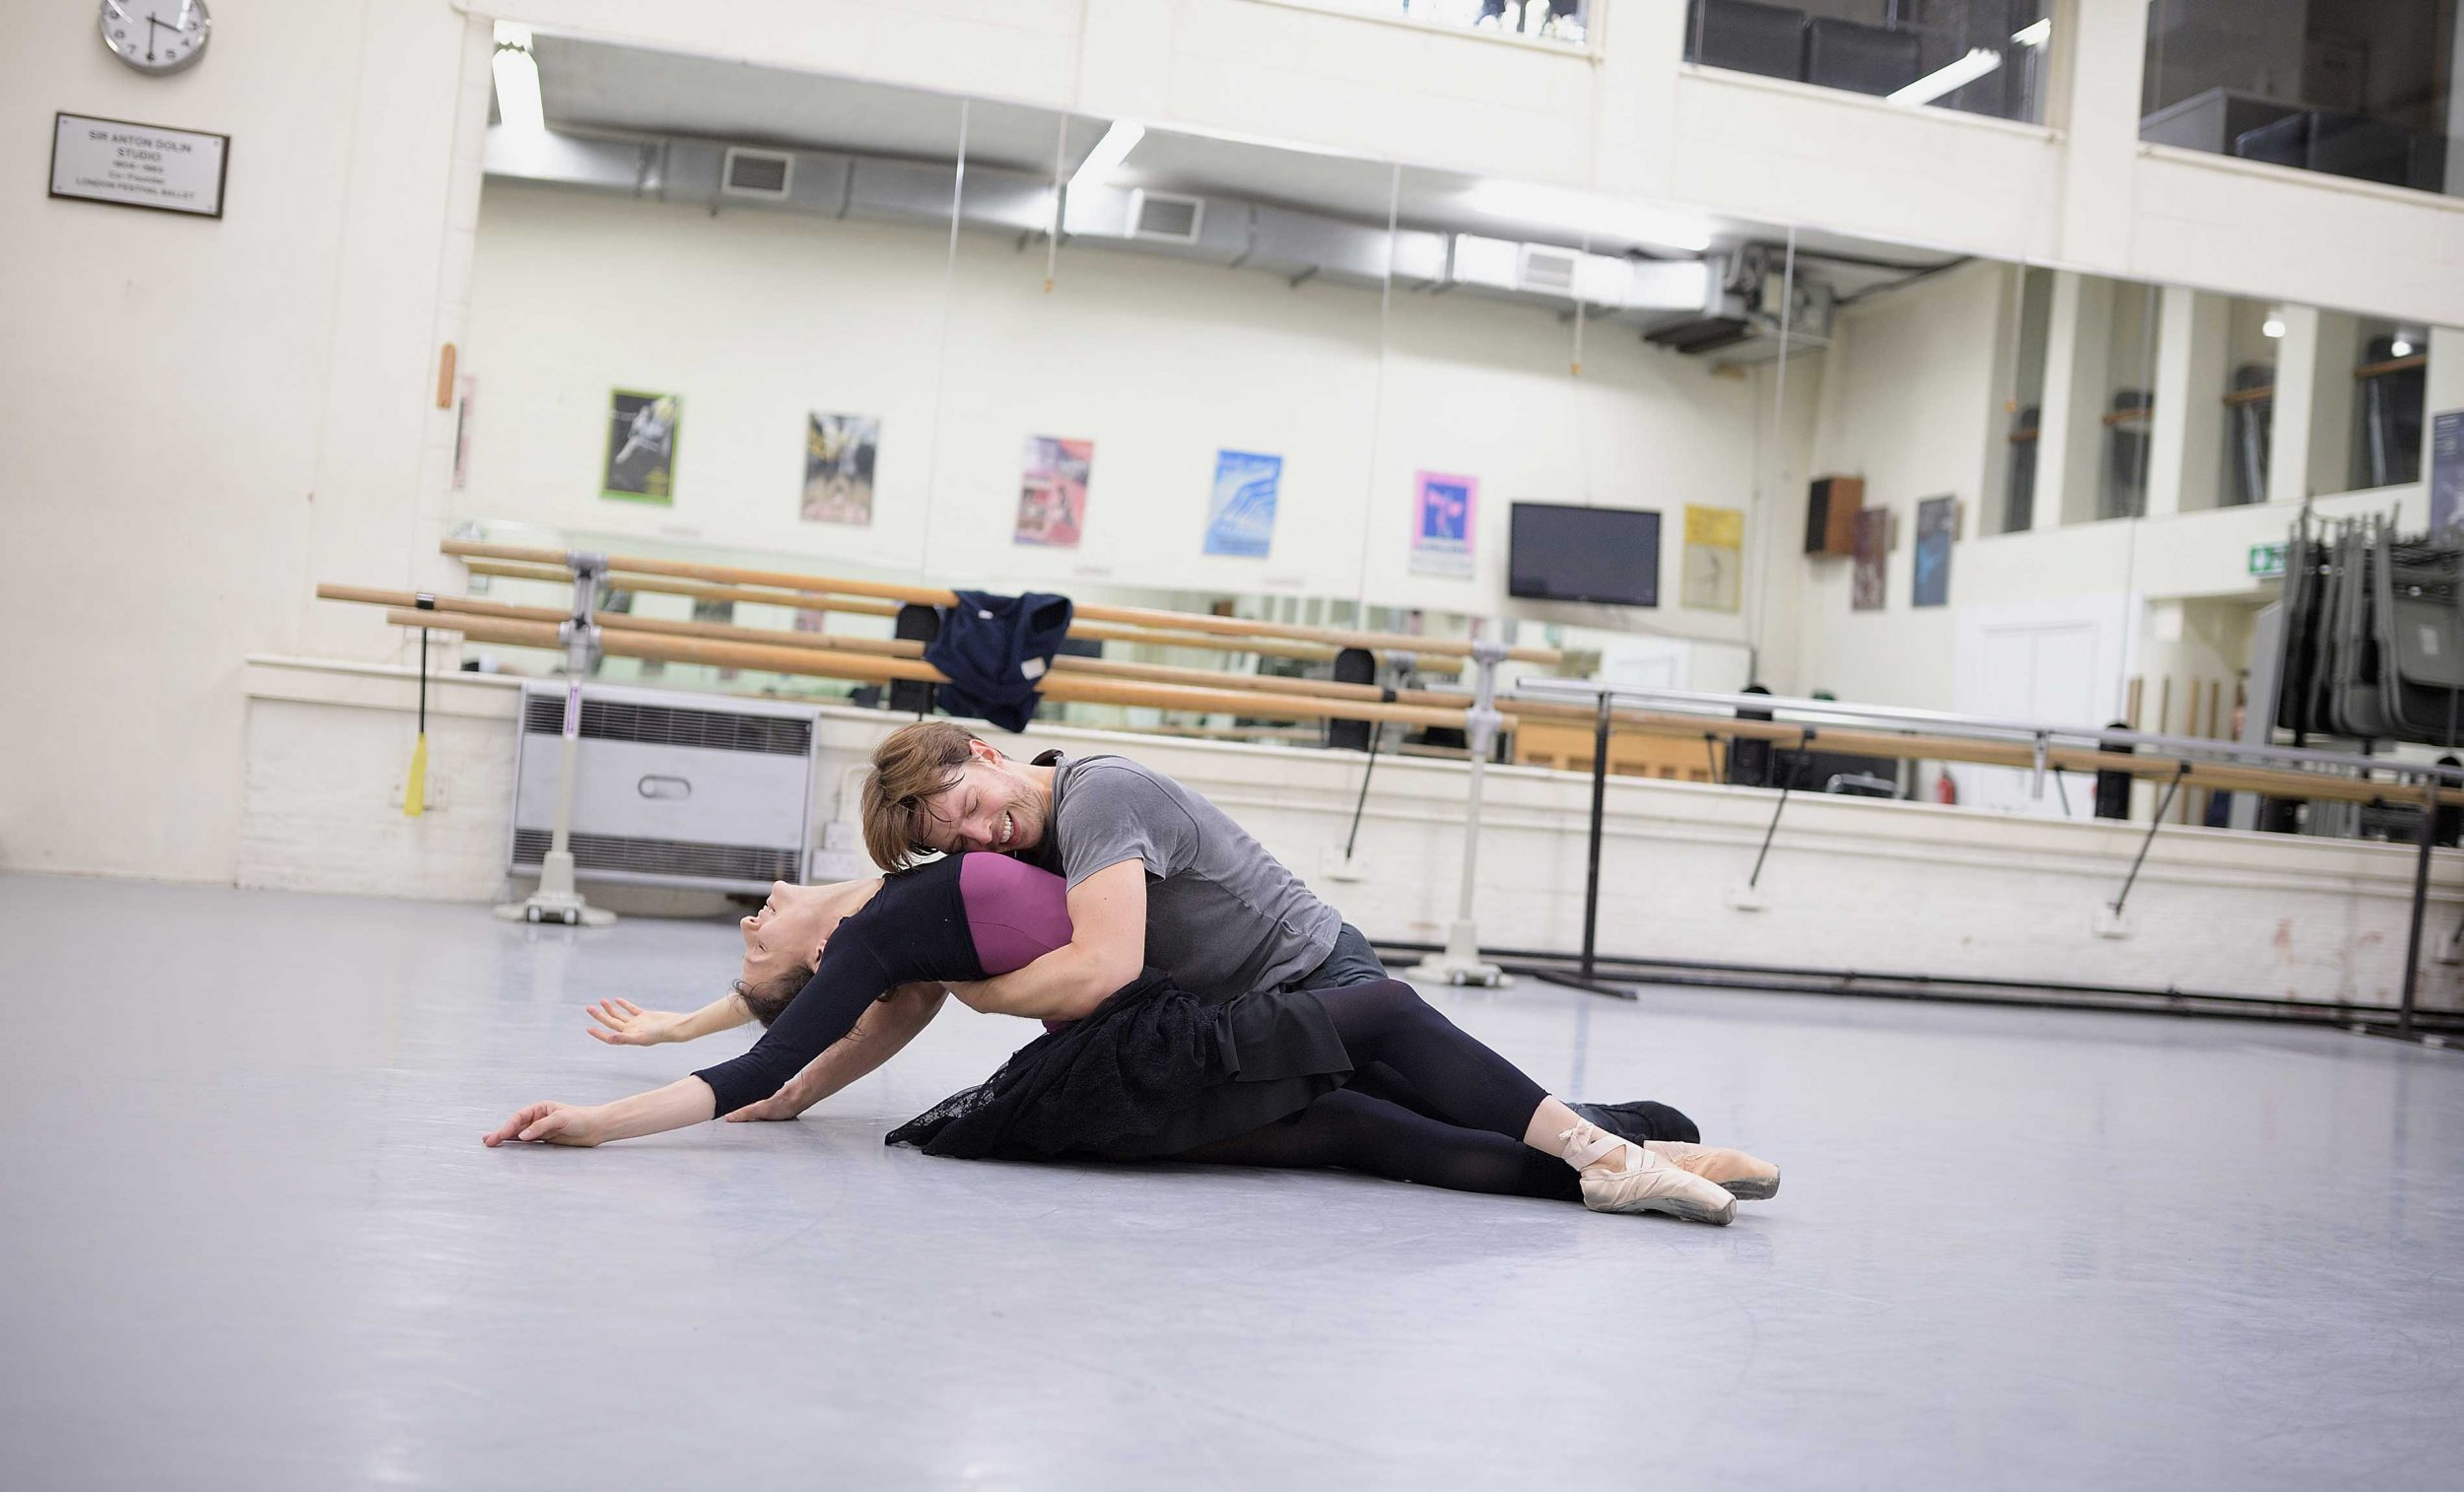 Alina-Cojocaru-and-Joseph-Caley-in-rehearsals-for-Manon-(c)-Laurent-Liotardo-(3)_WEB